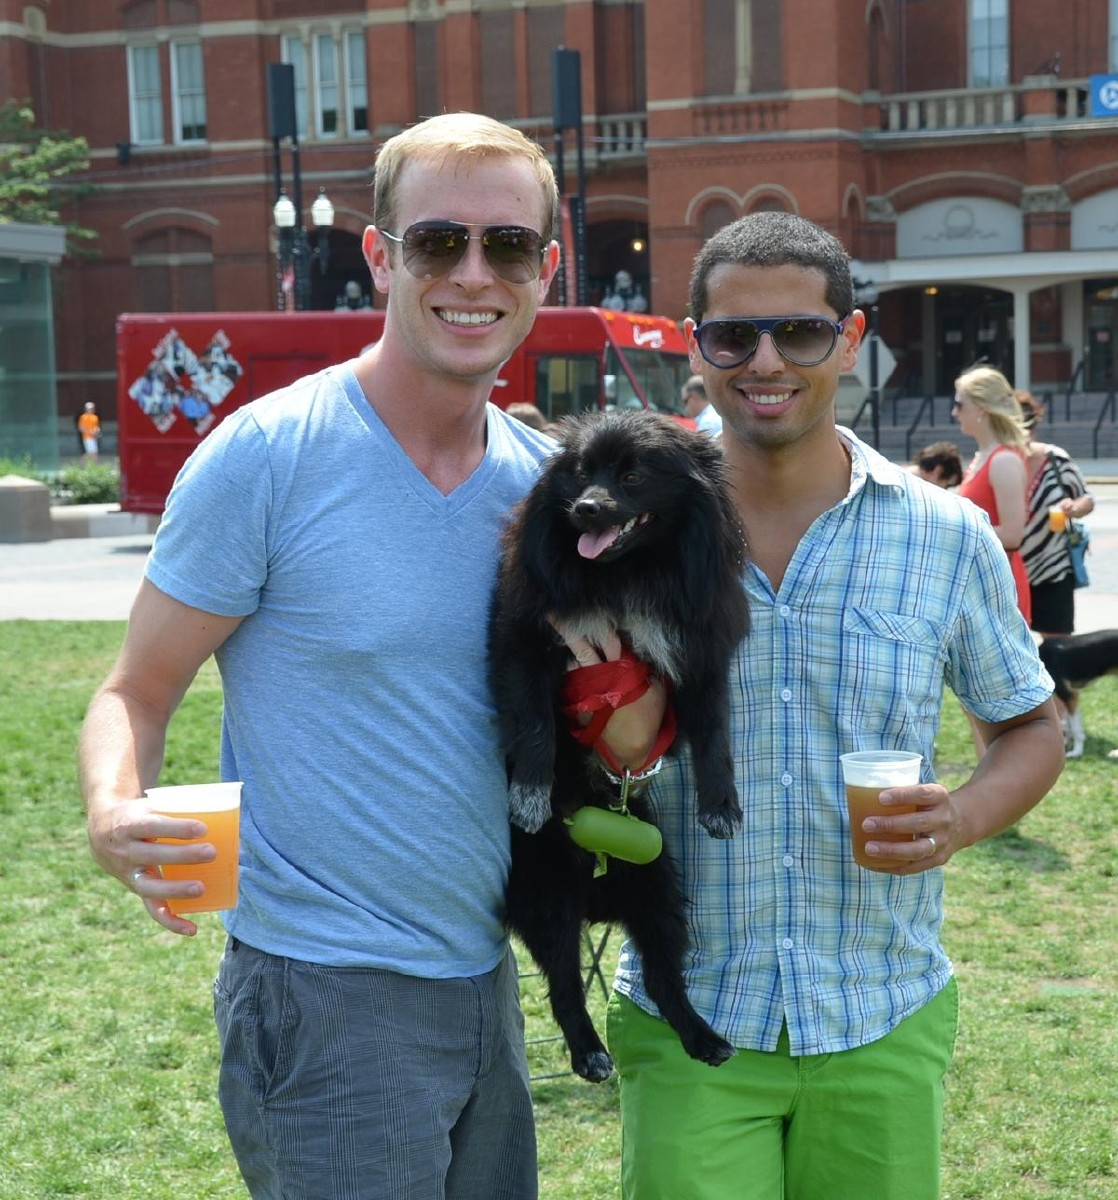 Ethan Fletcher, Andrew Hickman, and Pompom the dog (Image: Leah Zipperstein / Cincinnati Refined)